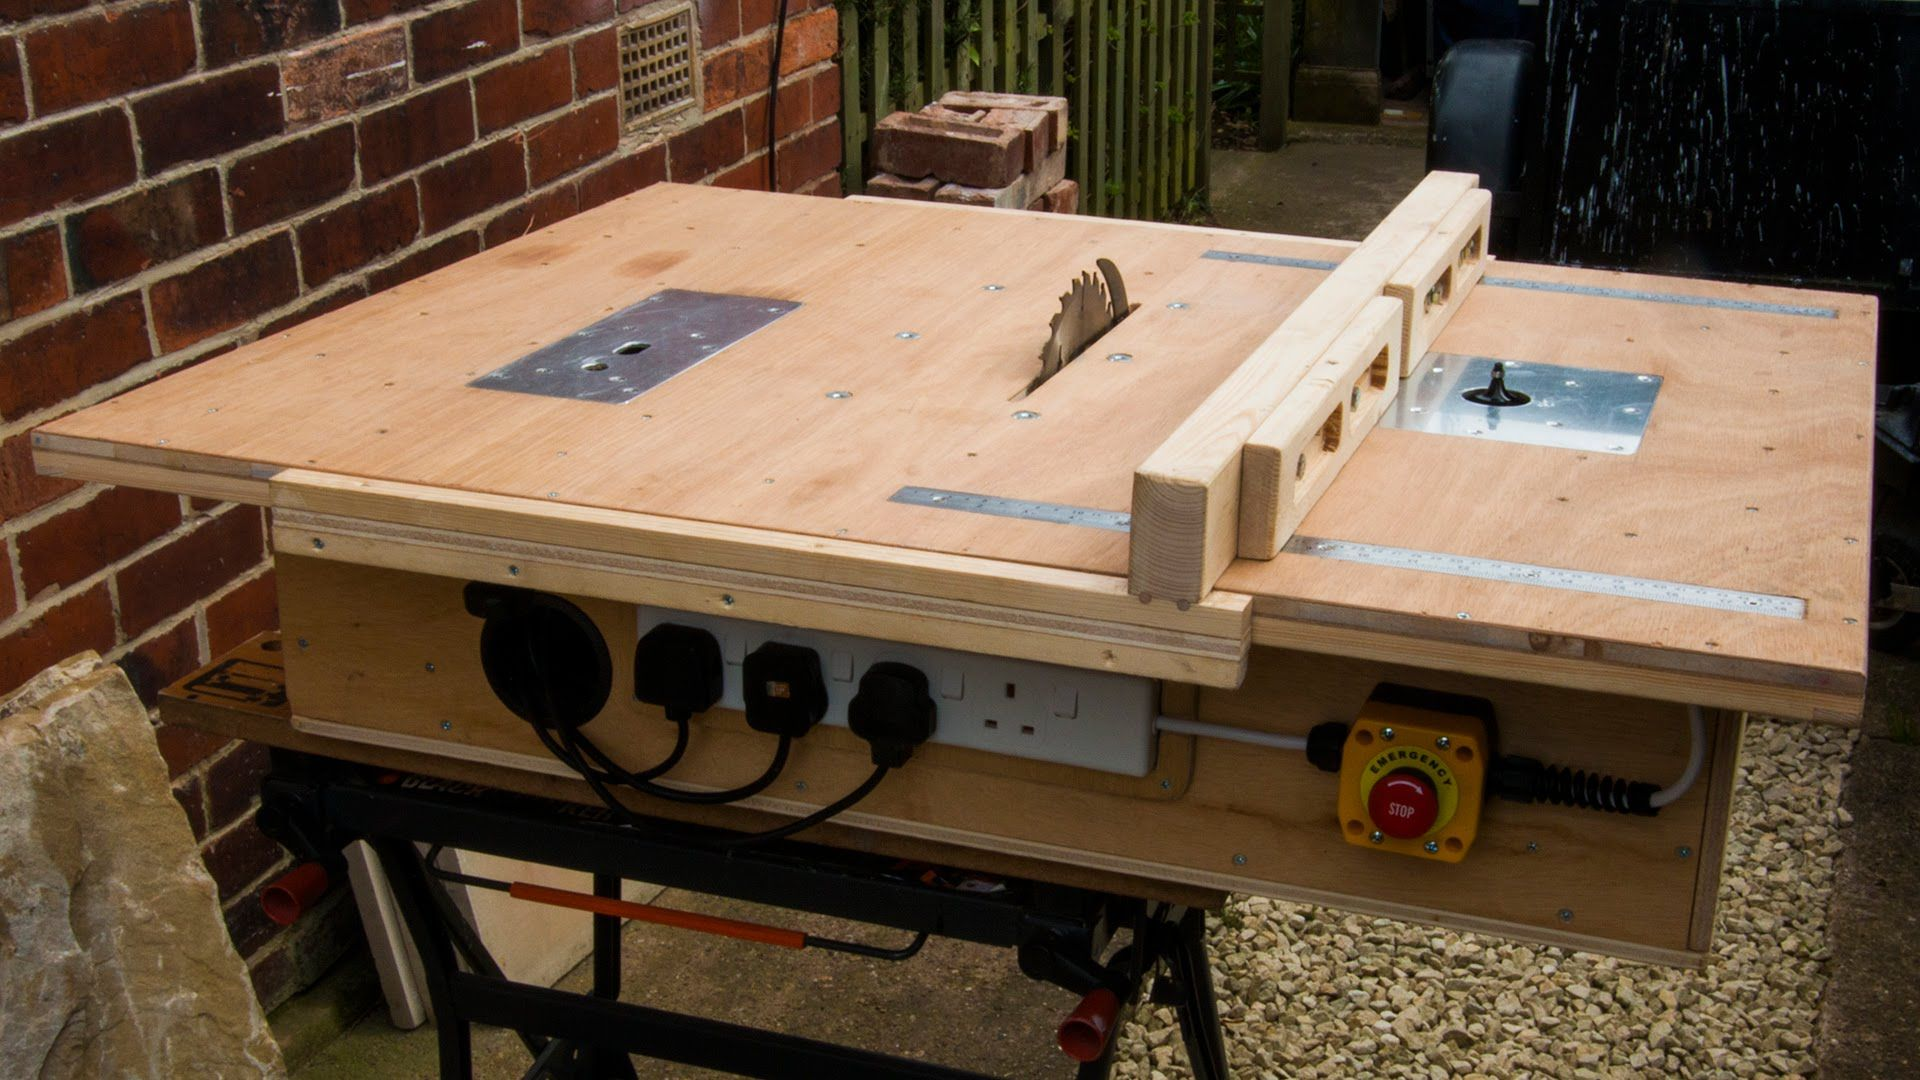 hi this is my take on a homemade table saw router table and rh pinterest com table saw router table extension plans table saw router table attachment